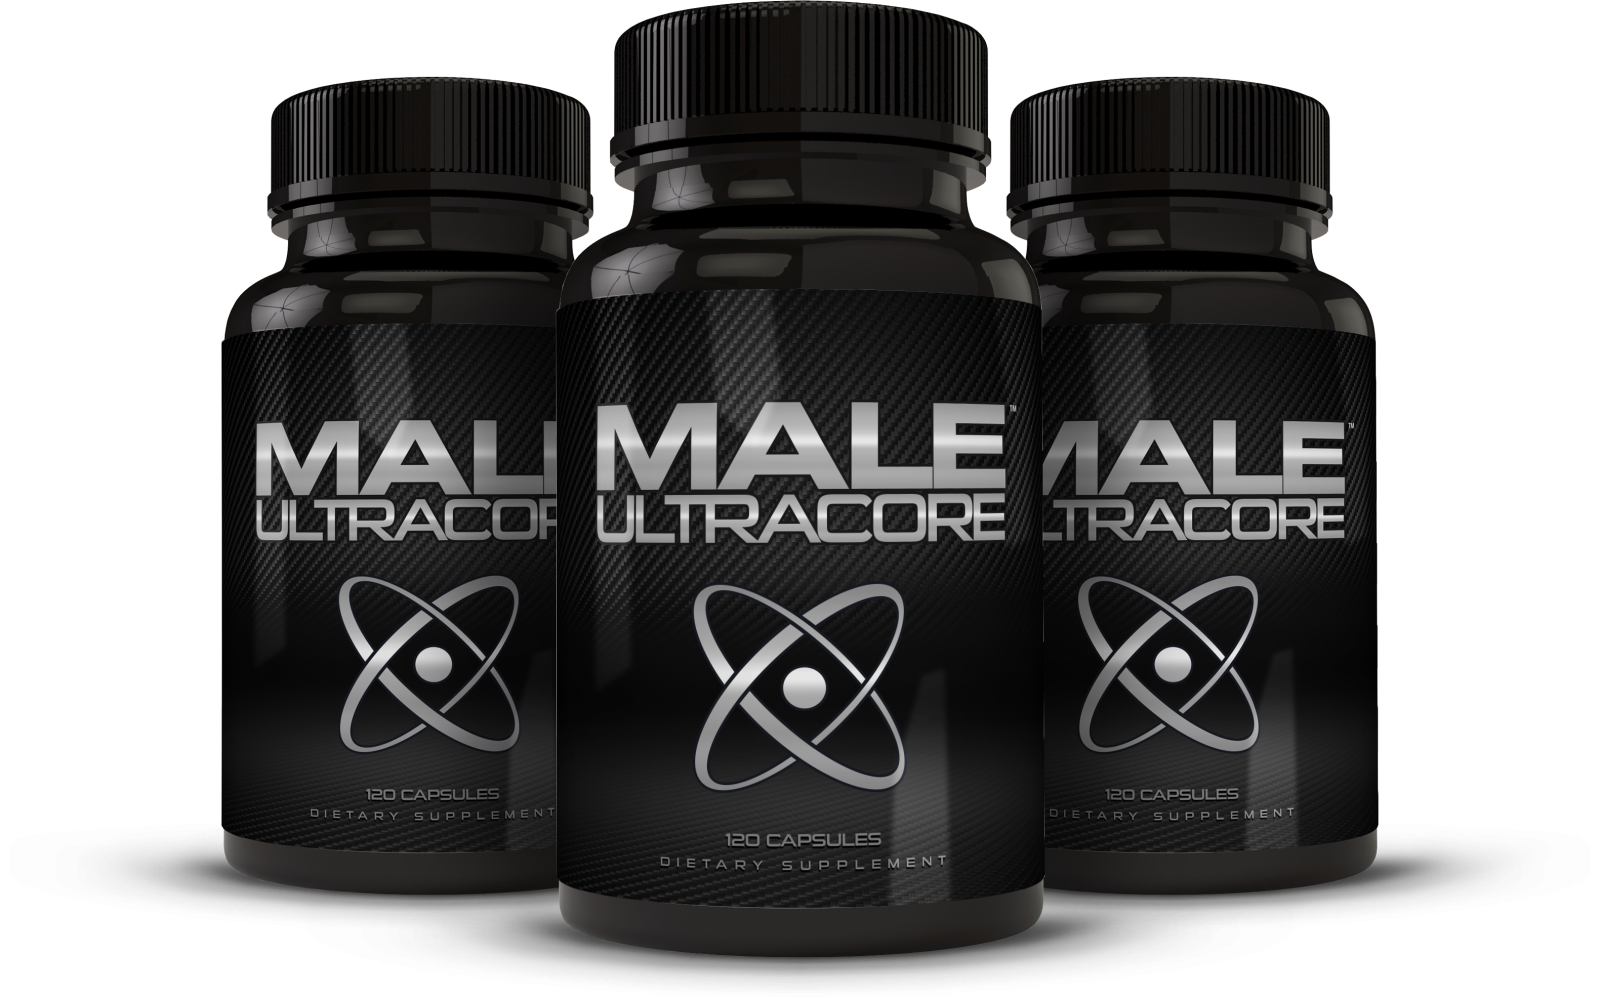 Best Male Enhancement Pills 2019 Male Ultracore Review   [2019 Review] Best Male Enhancement Pill?